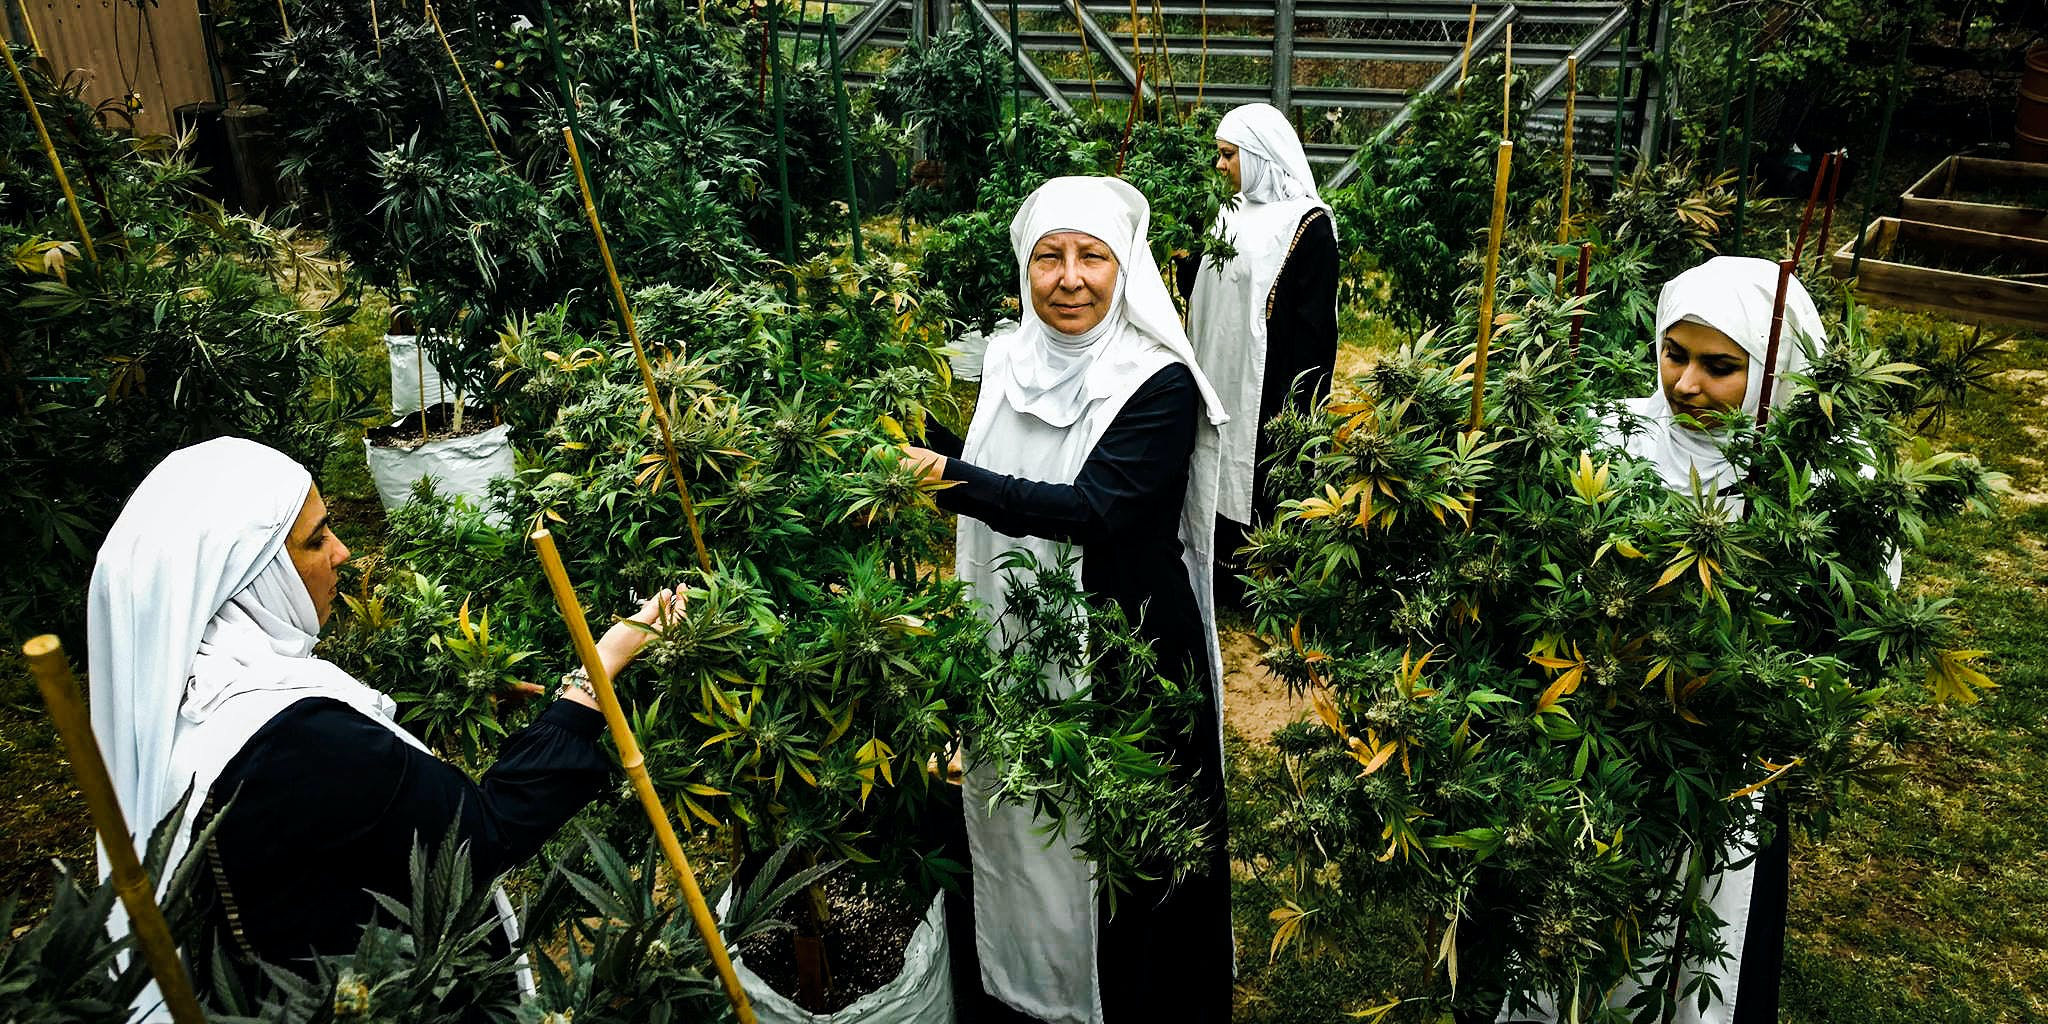 New Documentary Profiles Weed Growing Nuns Will Release This Fall